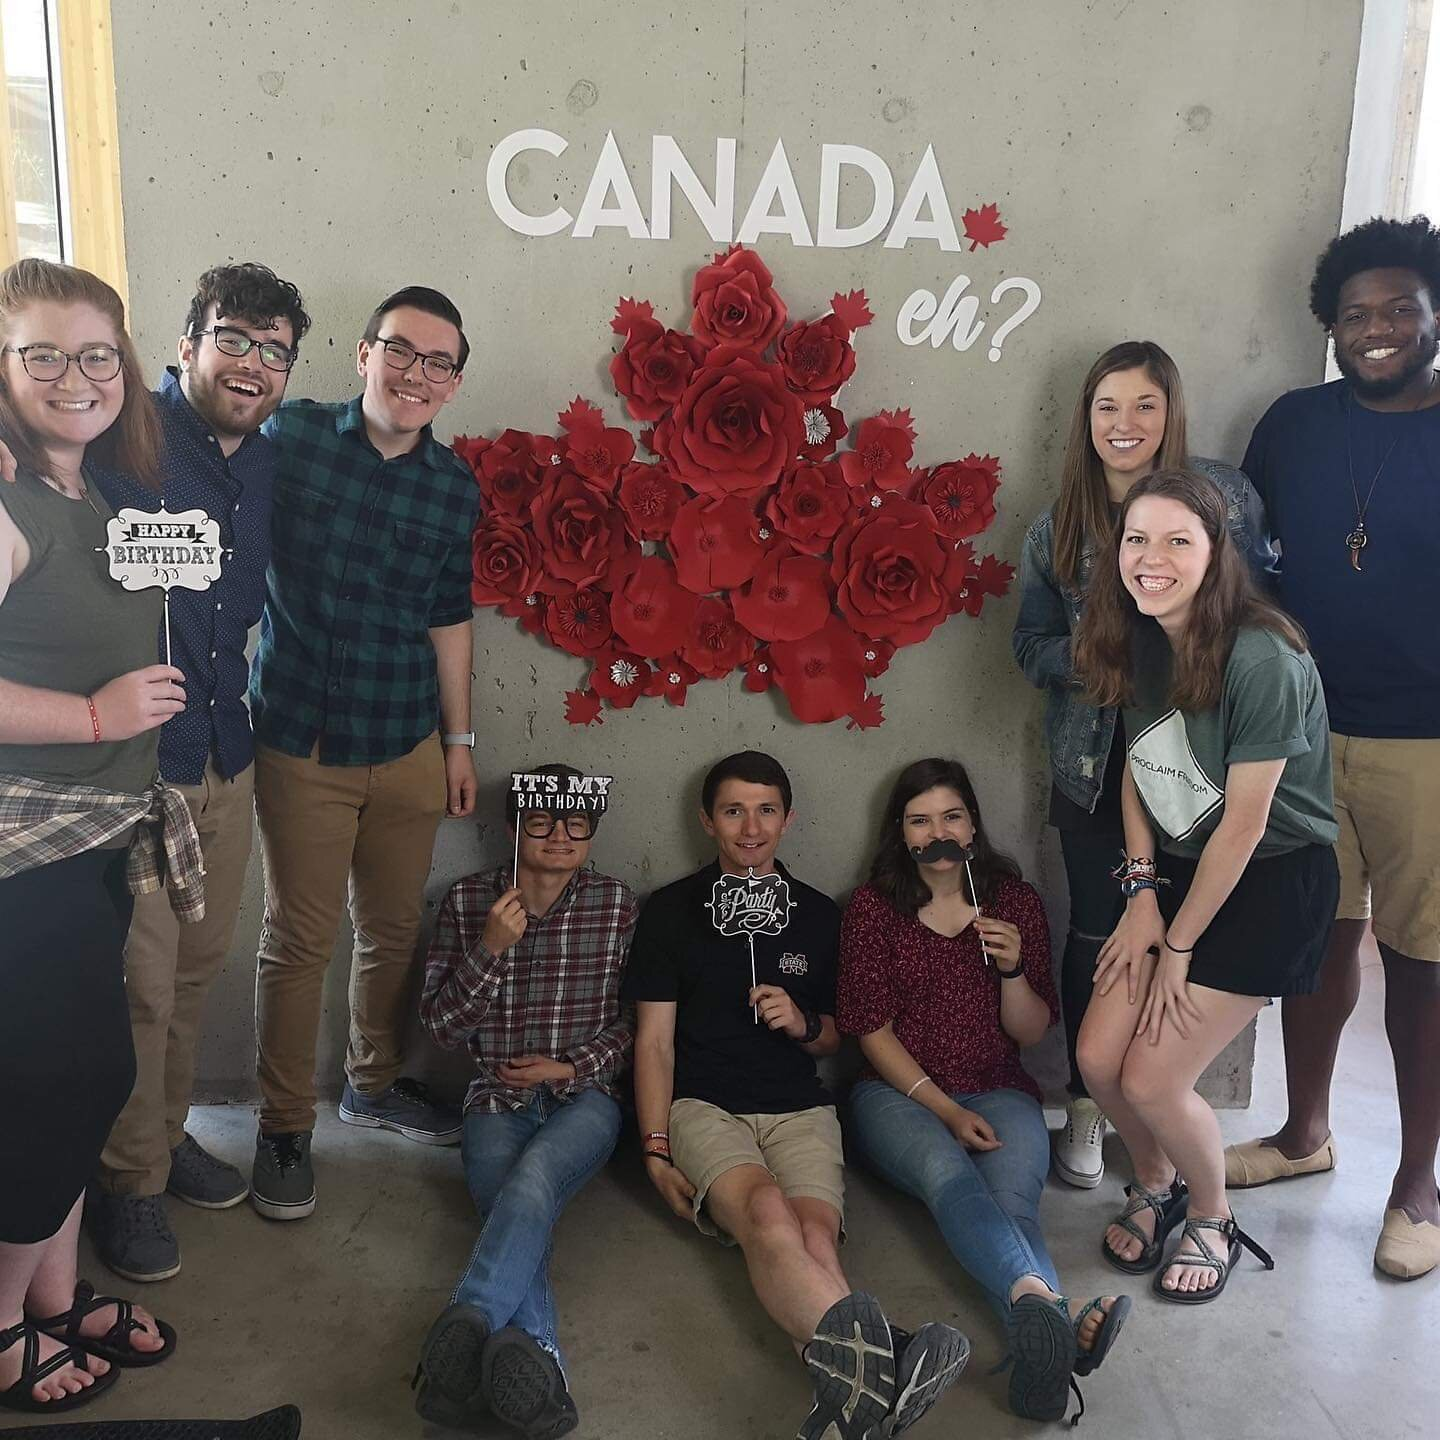 Team in front of Canada sign